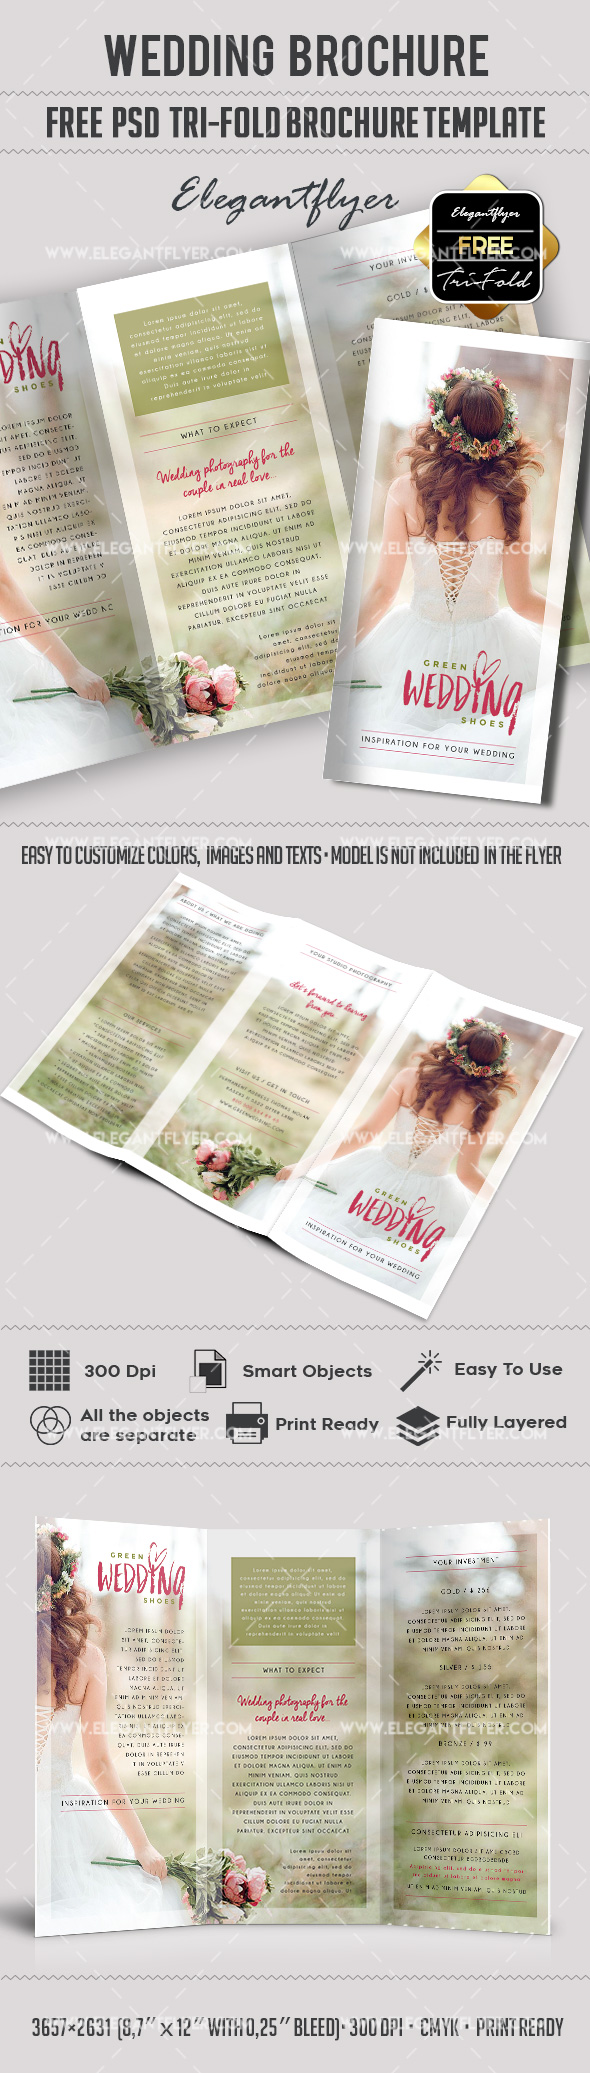 Wedding free tri fold psd brochure template by for Free templates for brochures tri fold